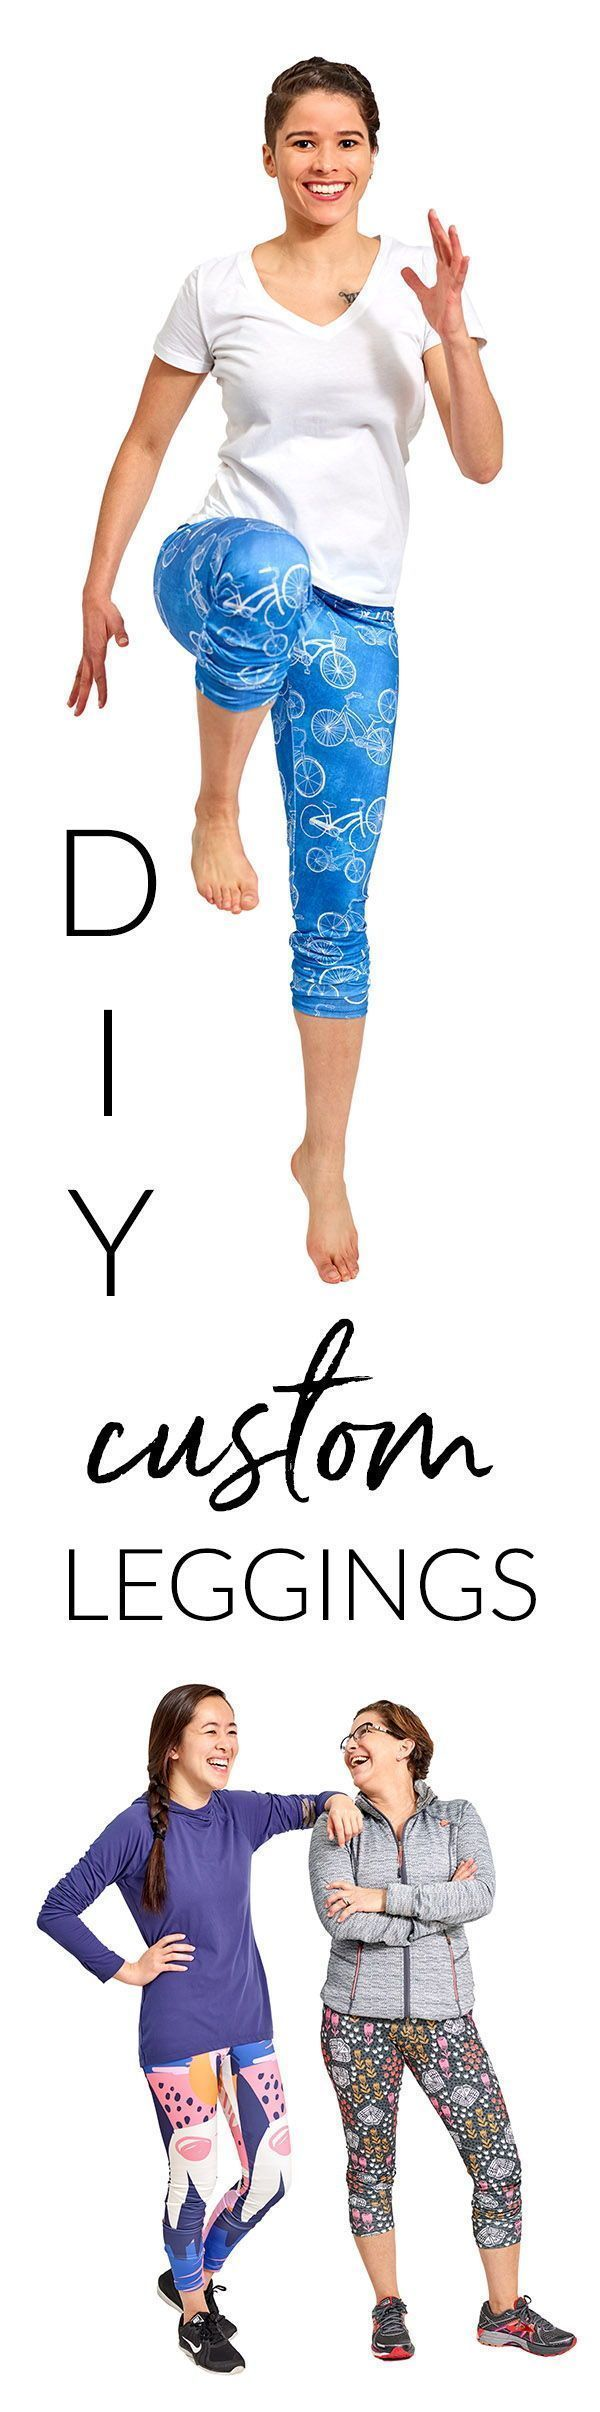 DIY Custom Cut & Sew Leggings - Make these easy DIY cut & sew leggings in a few easy steps. All you need is a pair of scissors and a sewing machine to make your very own custom printed leggings featuring the patterns and colors of your choice. Choose from thousands of designs in the Spoonflower Marketplace, or use your own design! Click to see the steps in this easy to follow video. #sewingtutorial #diy #sewingtips #leggings #sewing #ilovetosew #sew #sewit #makeyourclothes